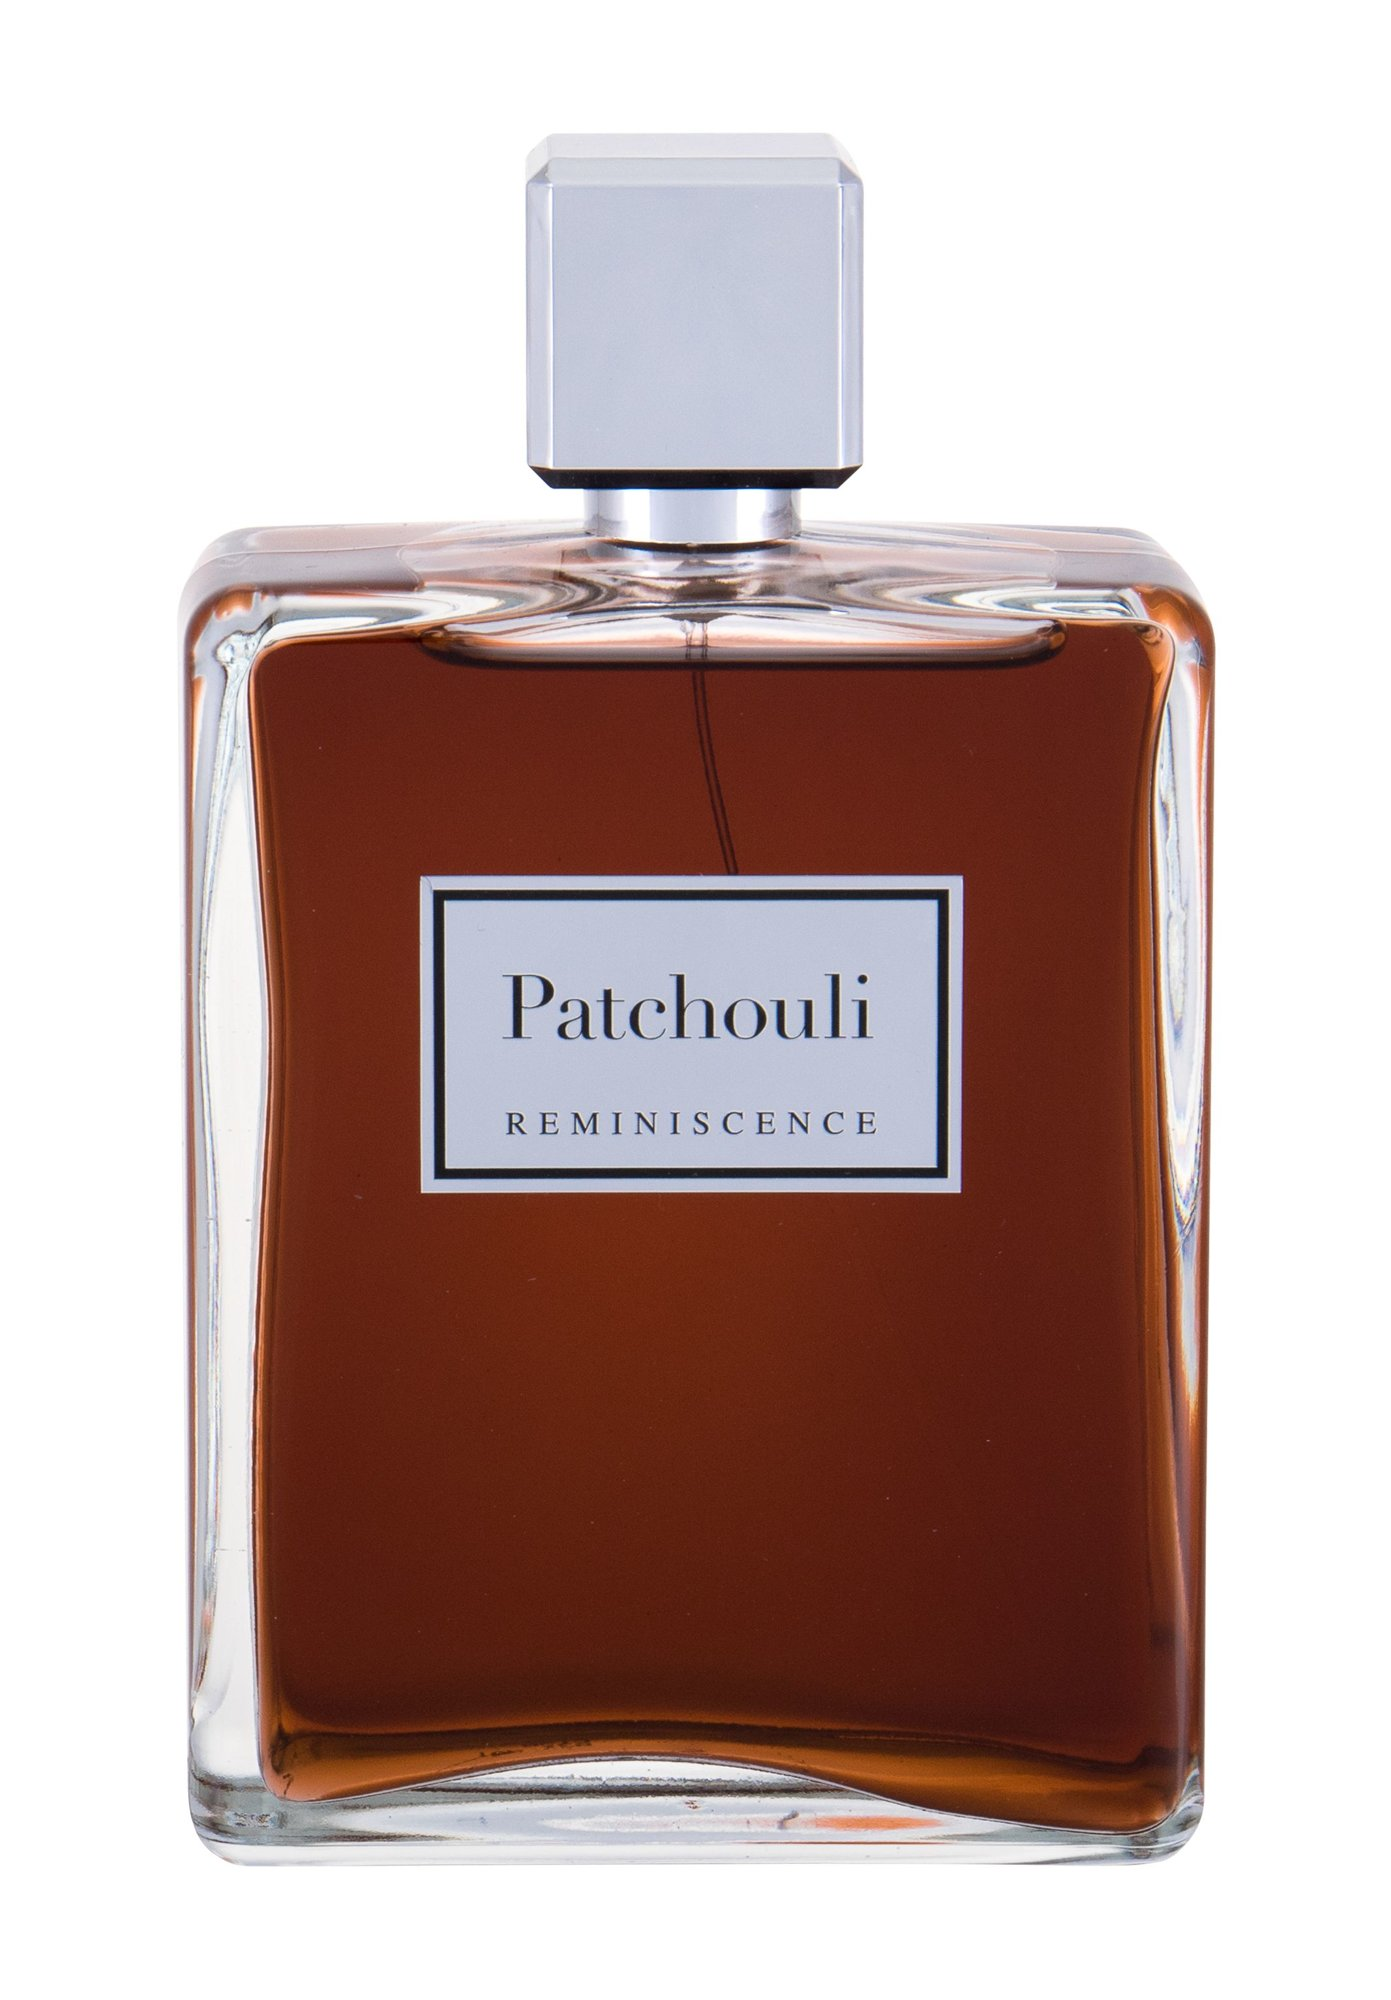 Reminiscence Patchouli Eau de Toilette 200ml